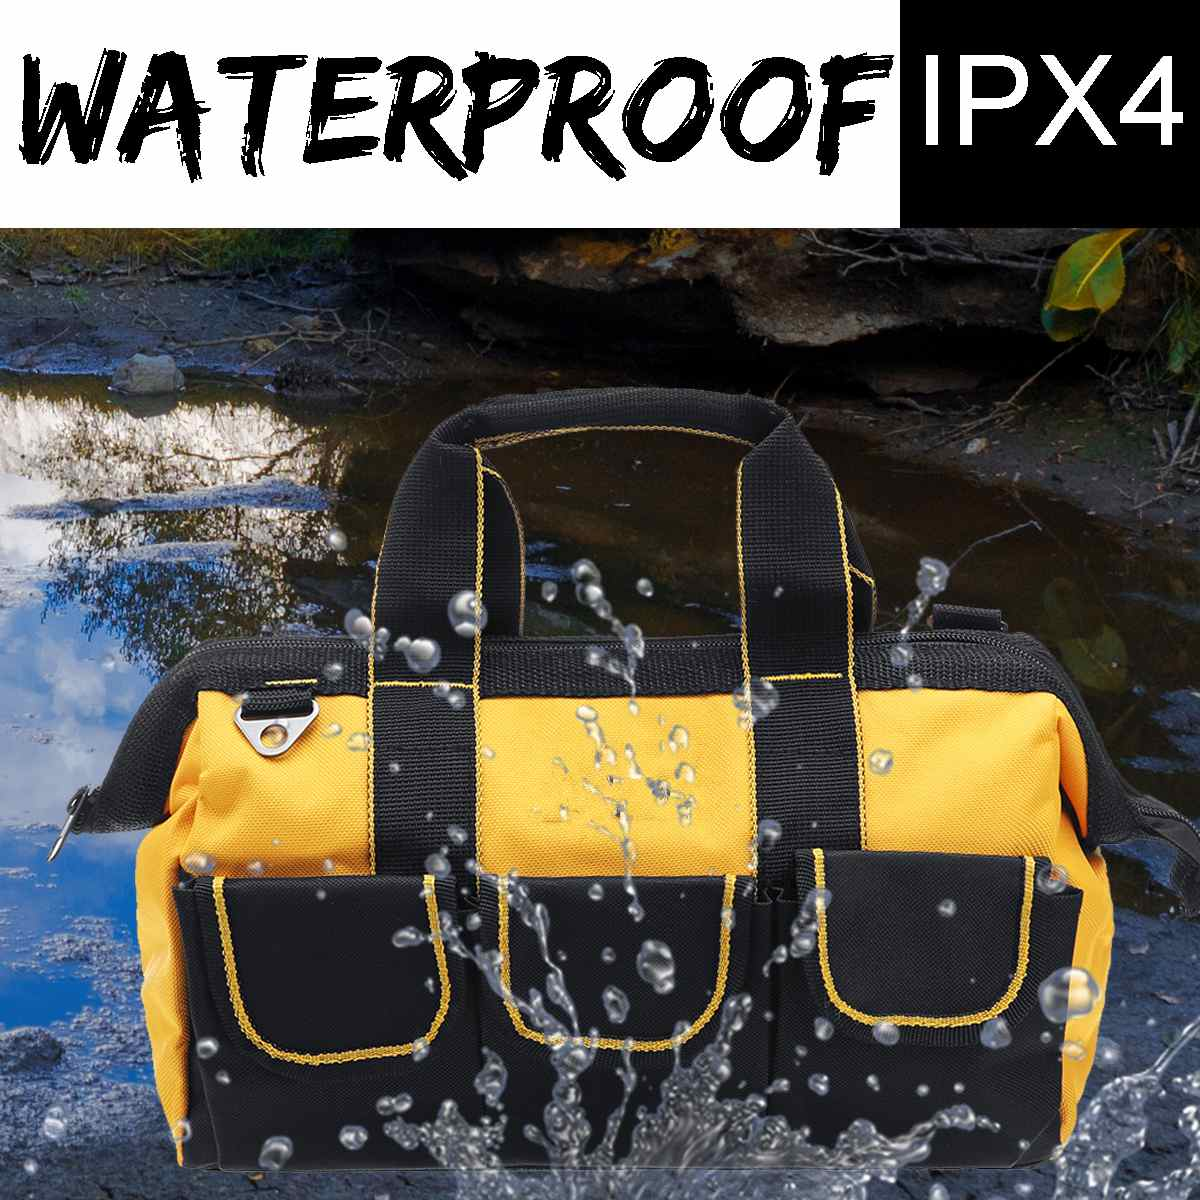 13inch Nylon Large Tool Bag Hand-held Shoulder Electrician Bag With Adjustable Strap Screwdrivers Drill Zipper Toolbag Portable